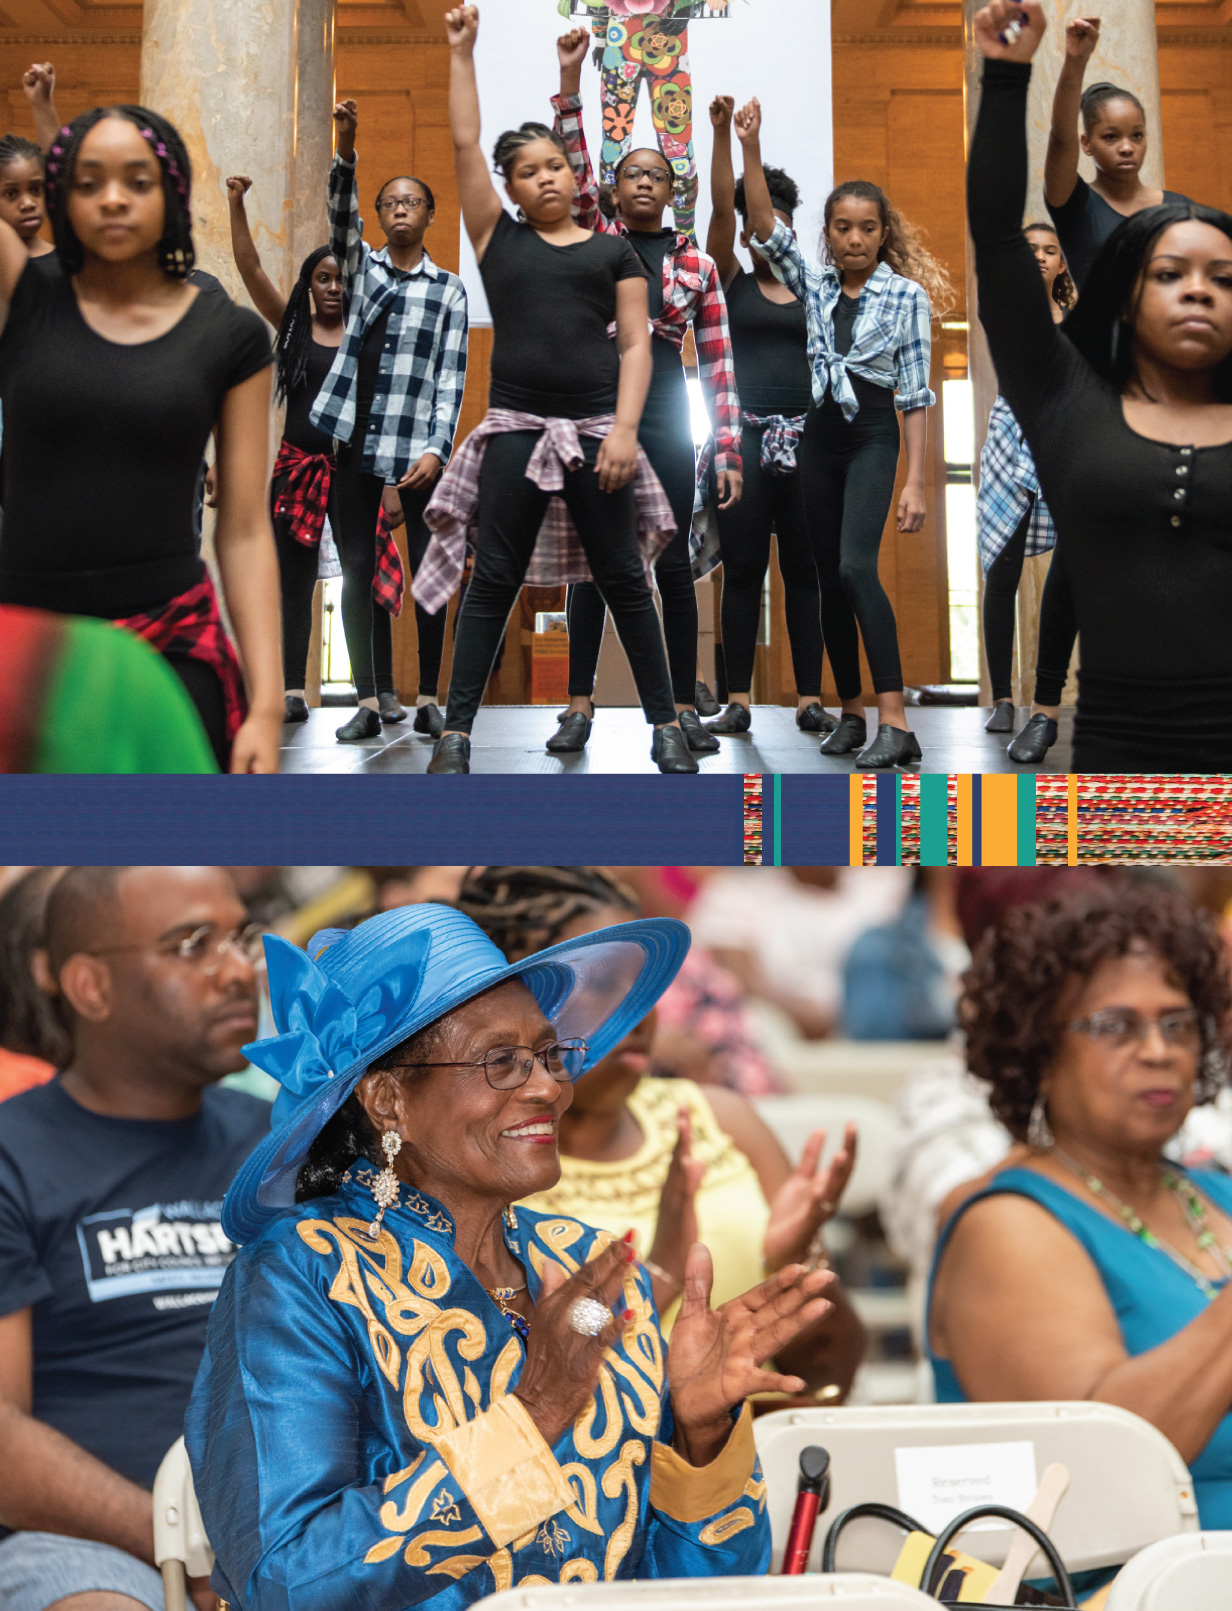 Juneteenth festival images from 2019